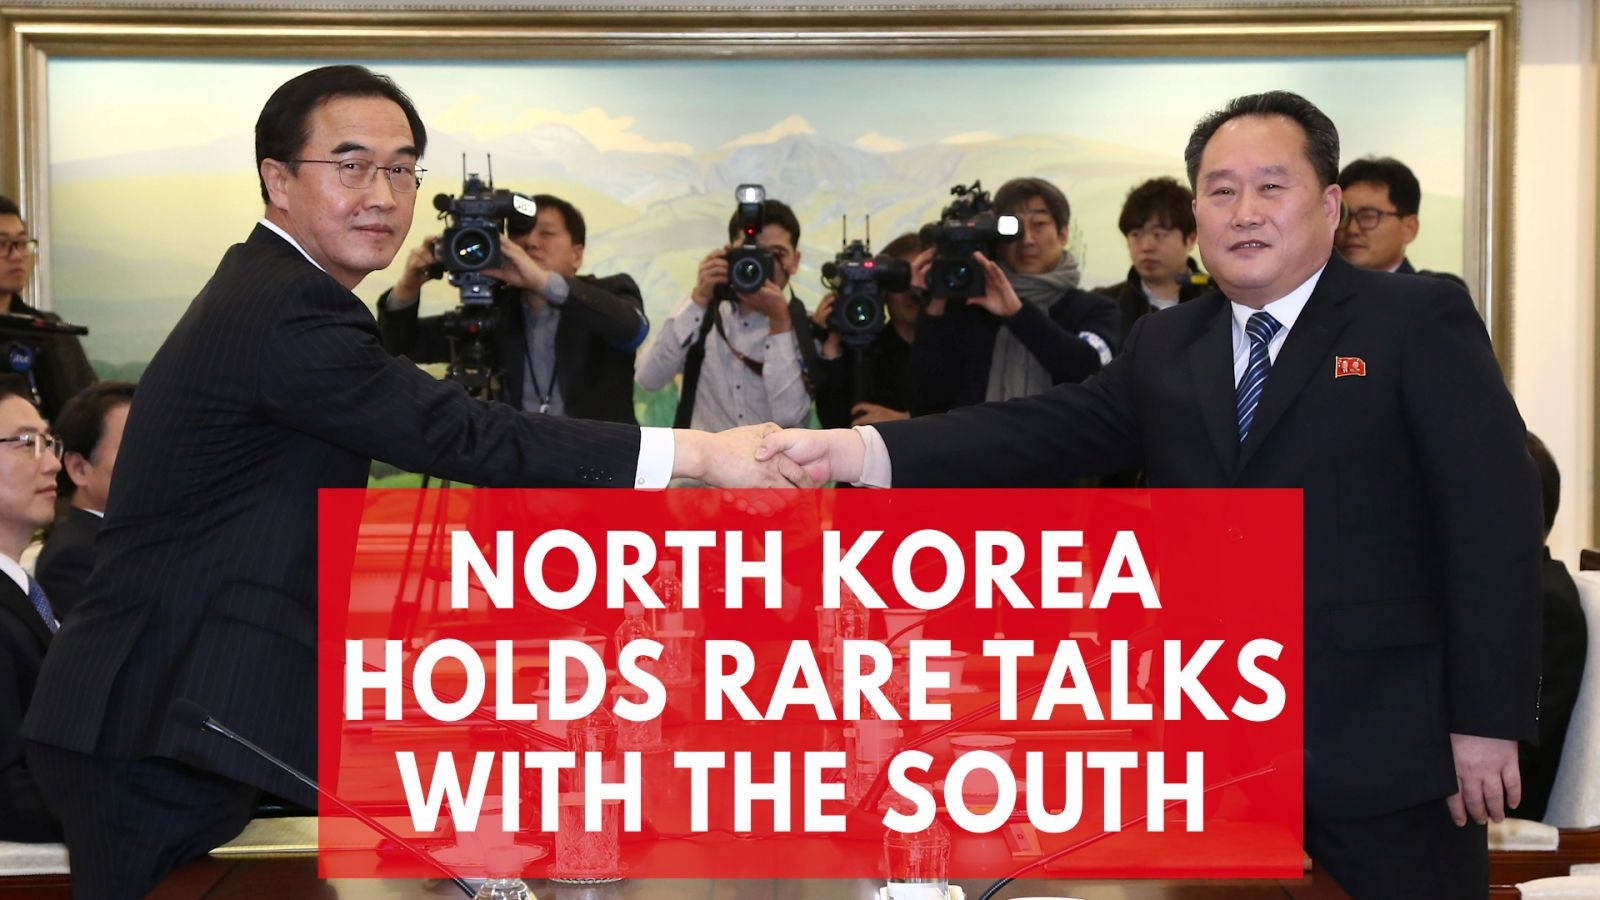 north-korea-agrees-to-send-athletes-to-olympic-games-after-rare-talks-with-seoul